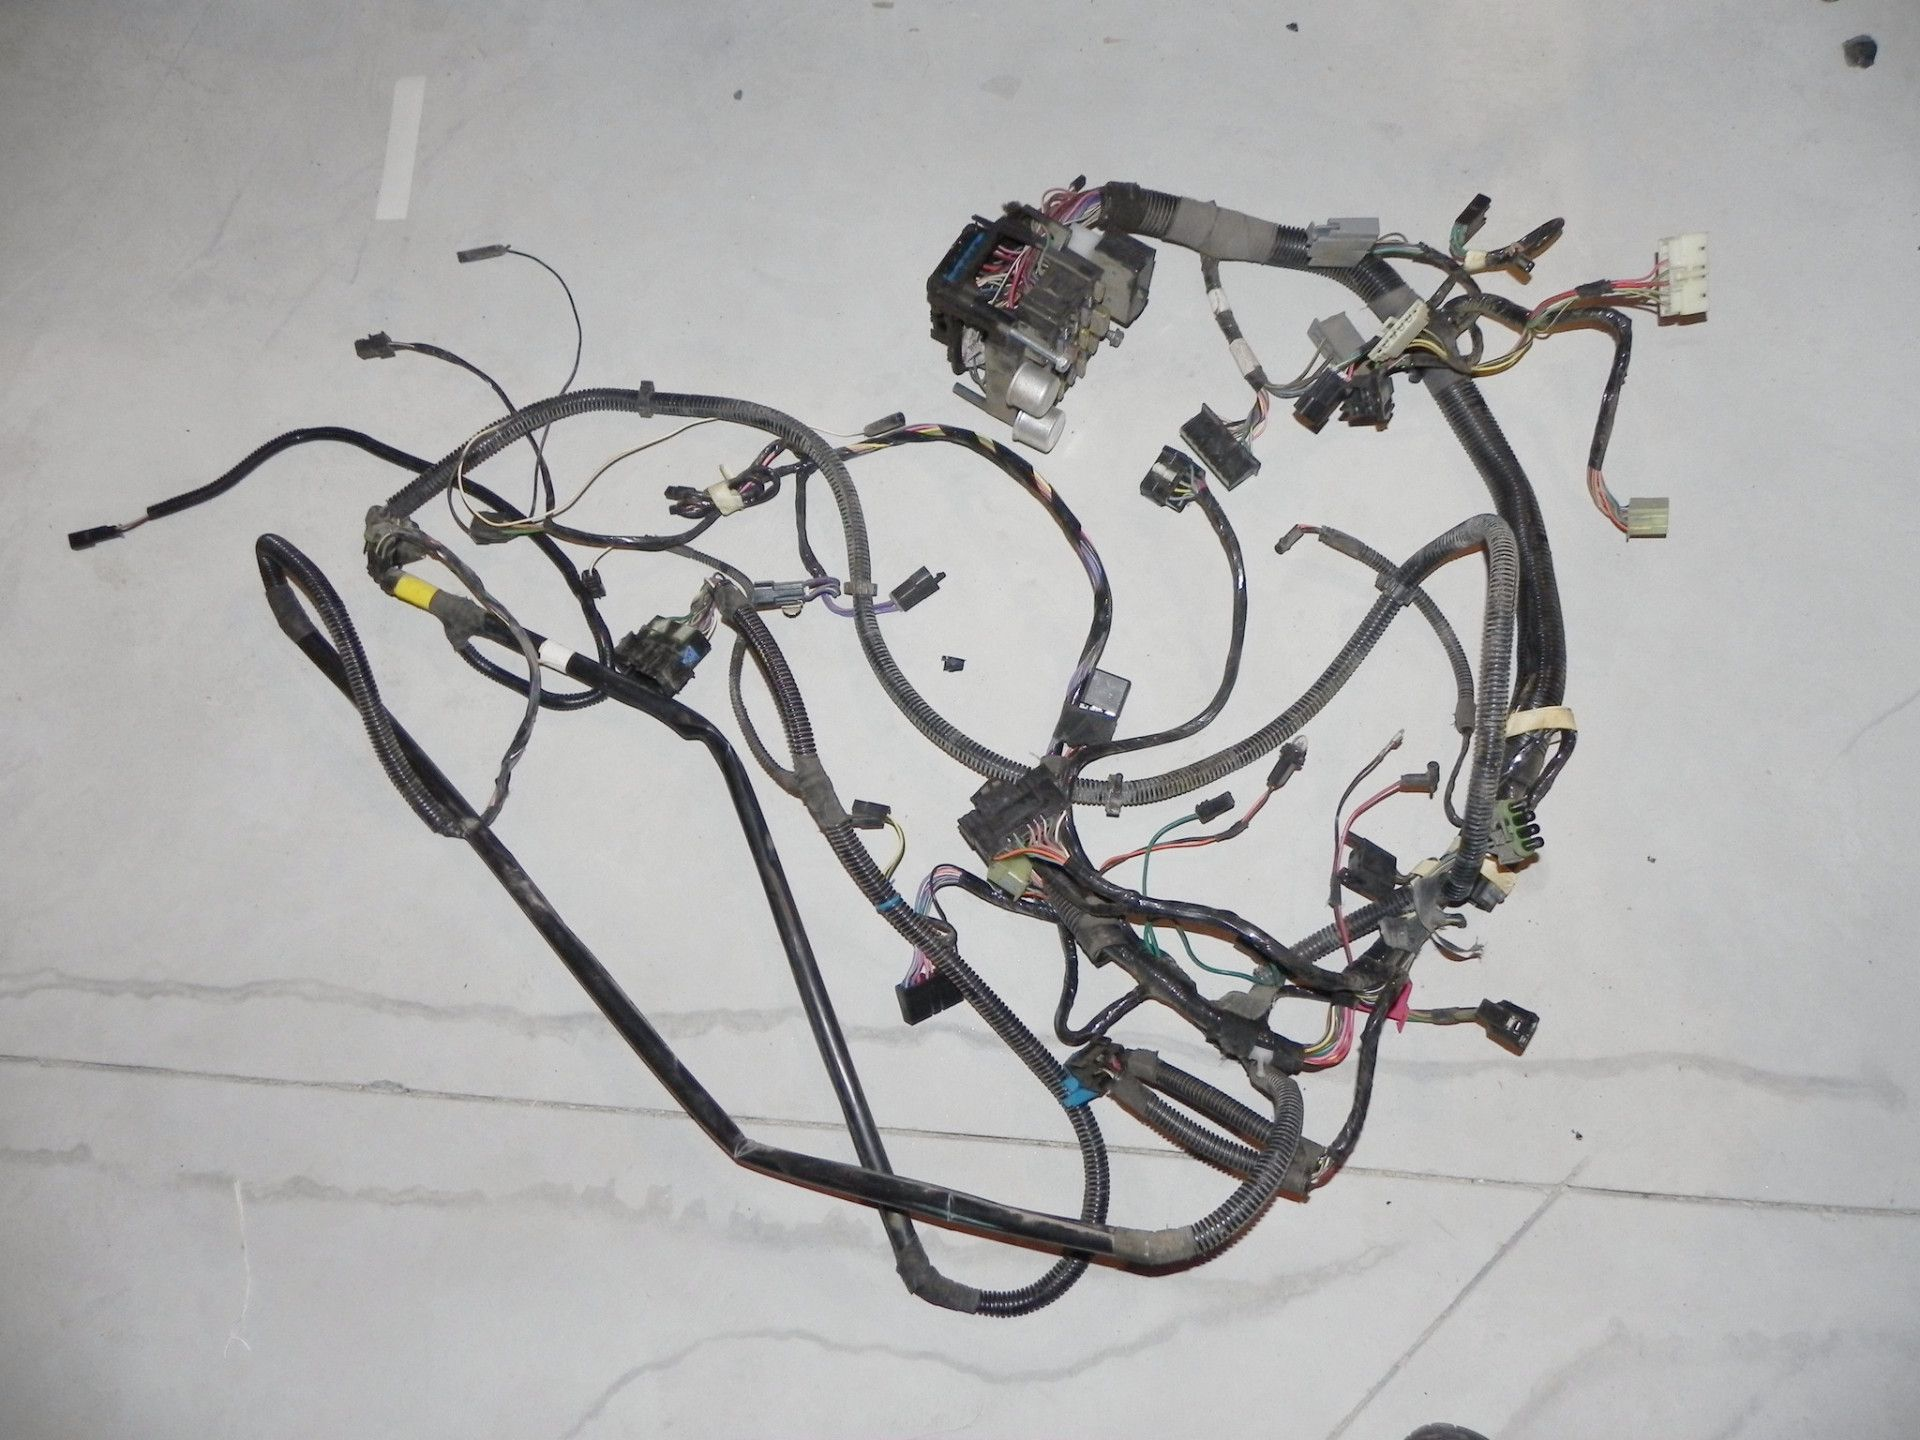 1ac84ff66da6ba86e03de6b4e4edac74 jeep wrangler yj interior under dash wiring harness 92 95 jeep 1987 jeep wrangler wiring harness at mr168.co